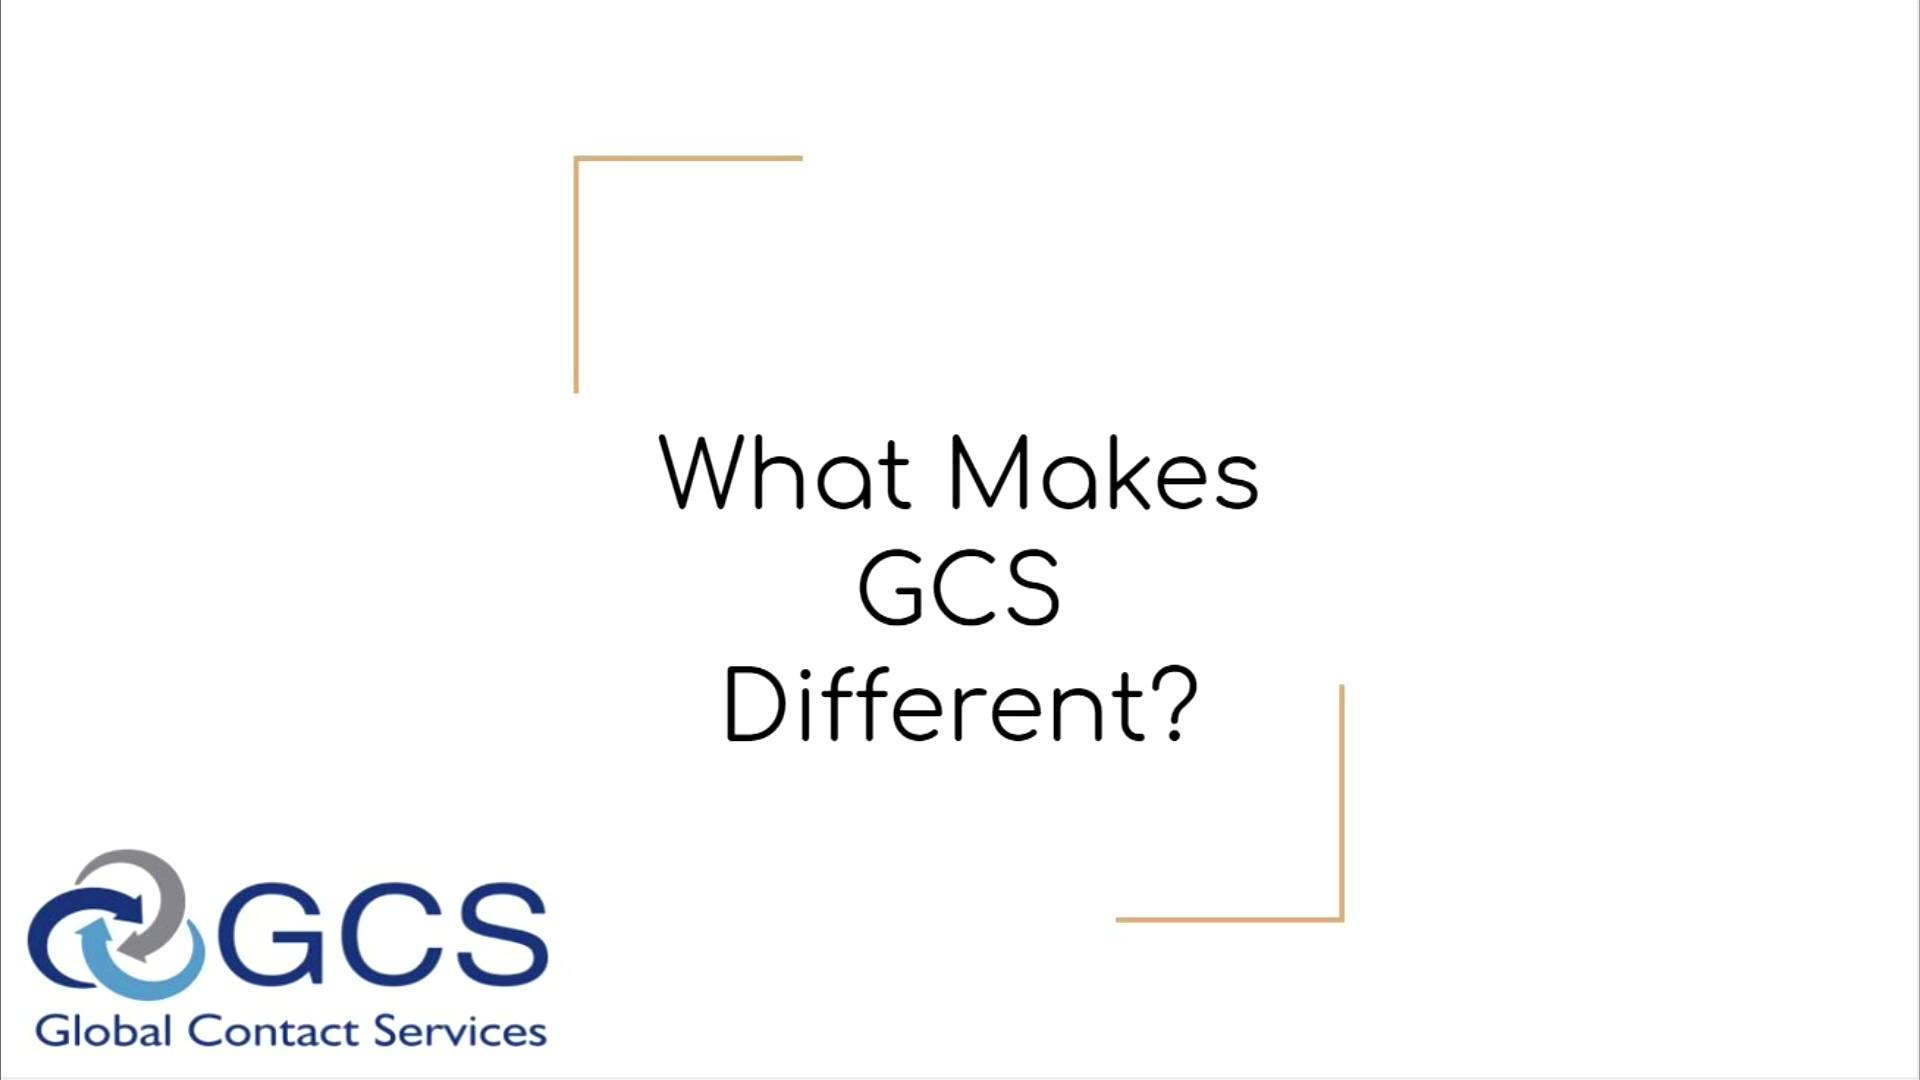 What Makes GCS Different